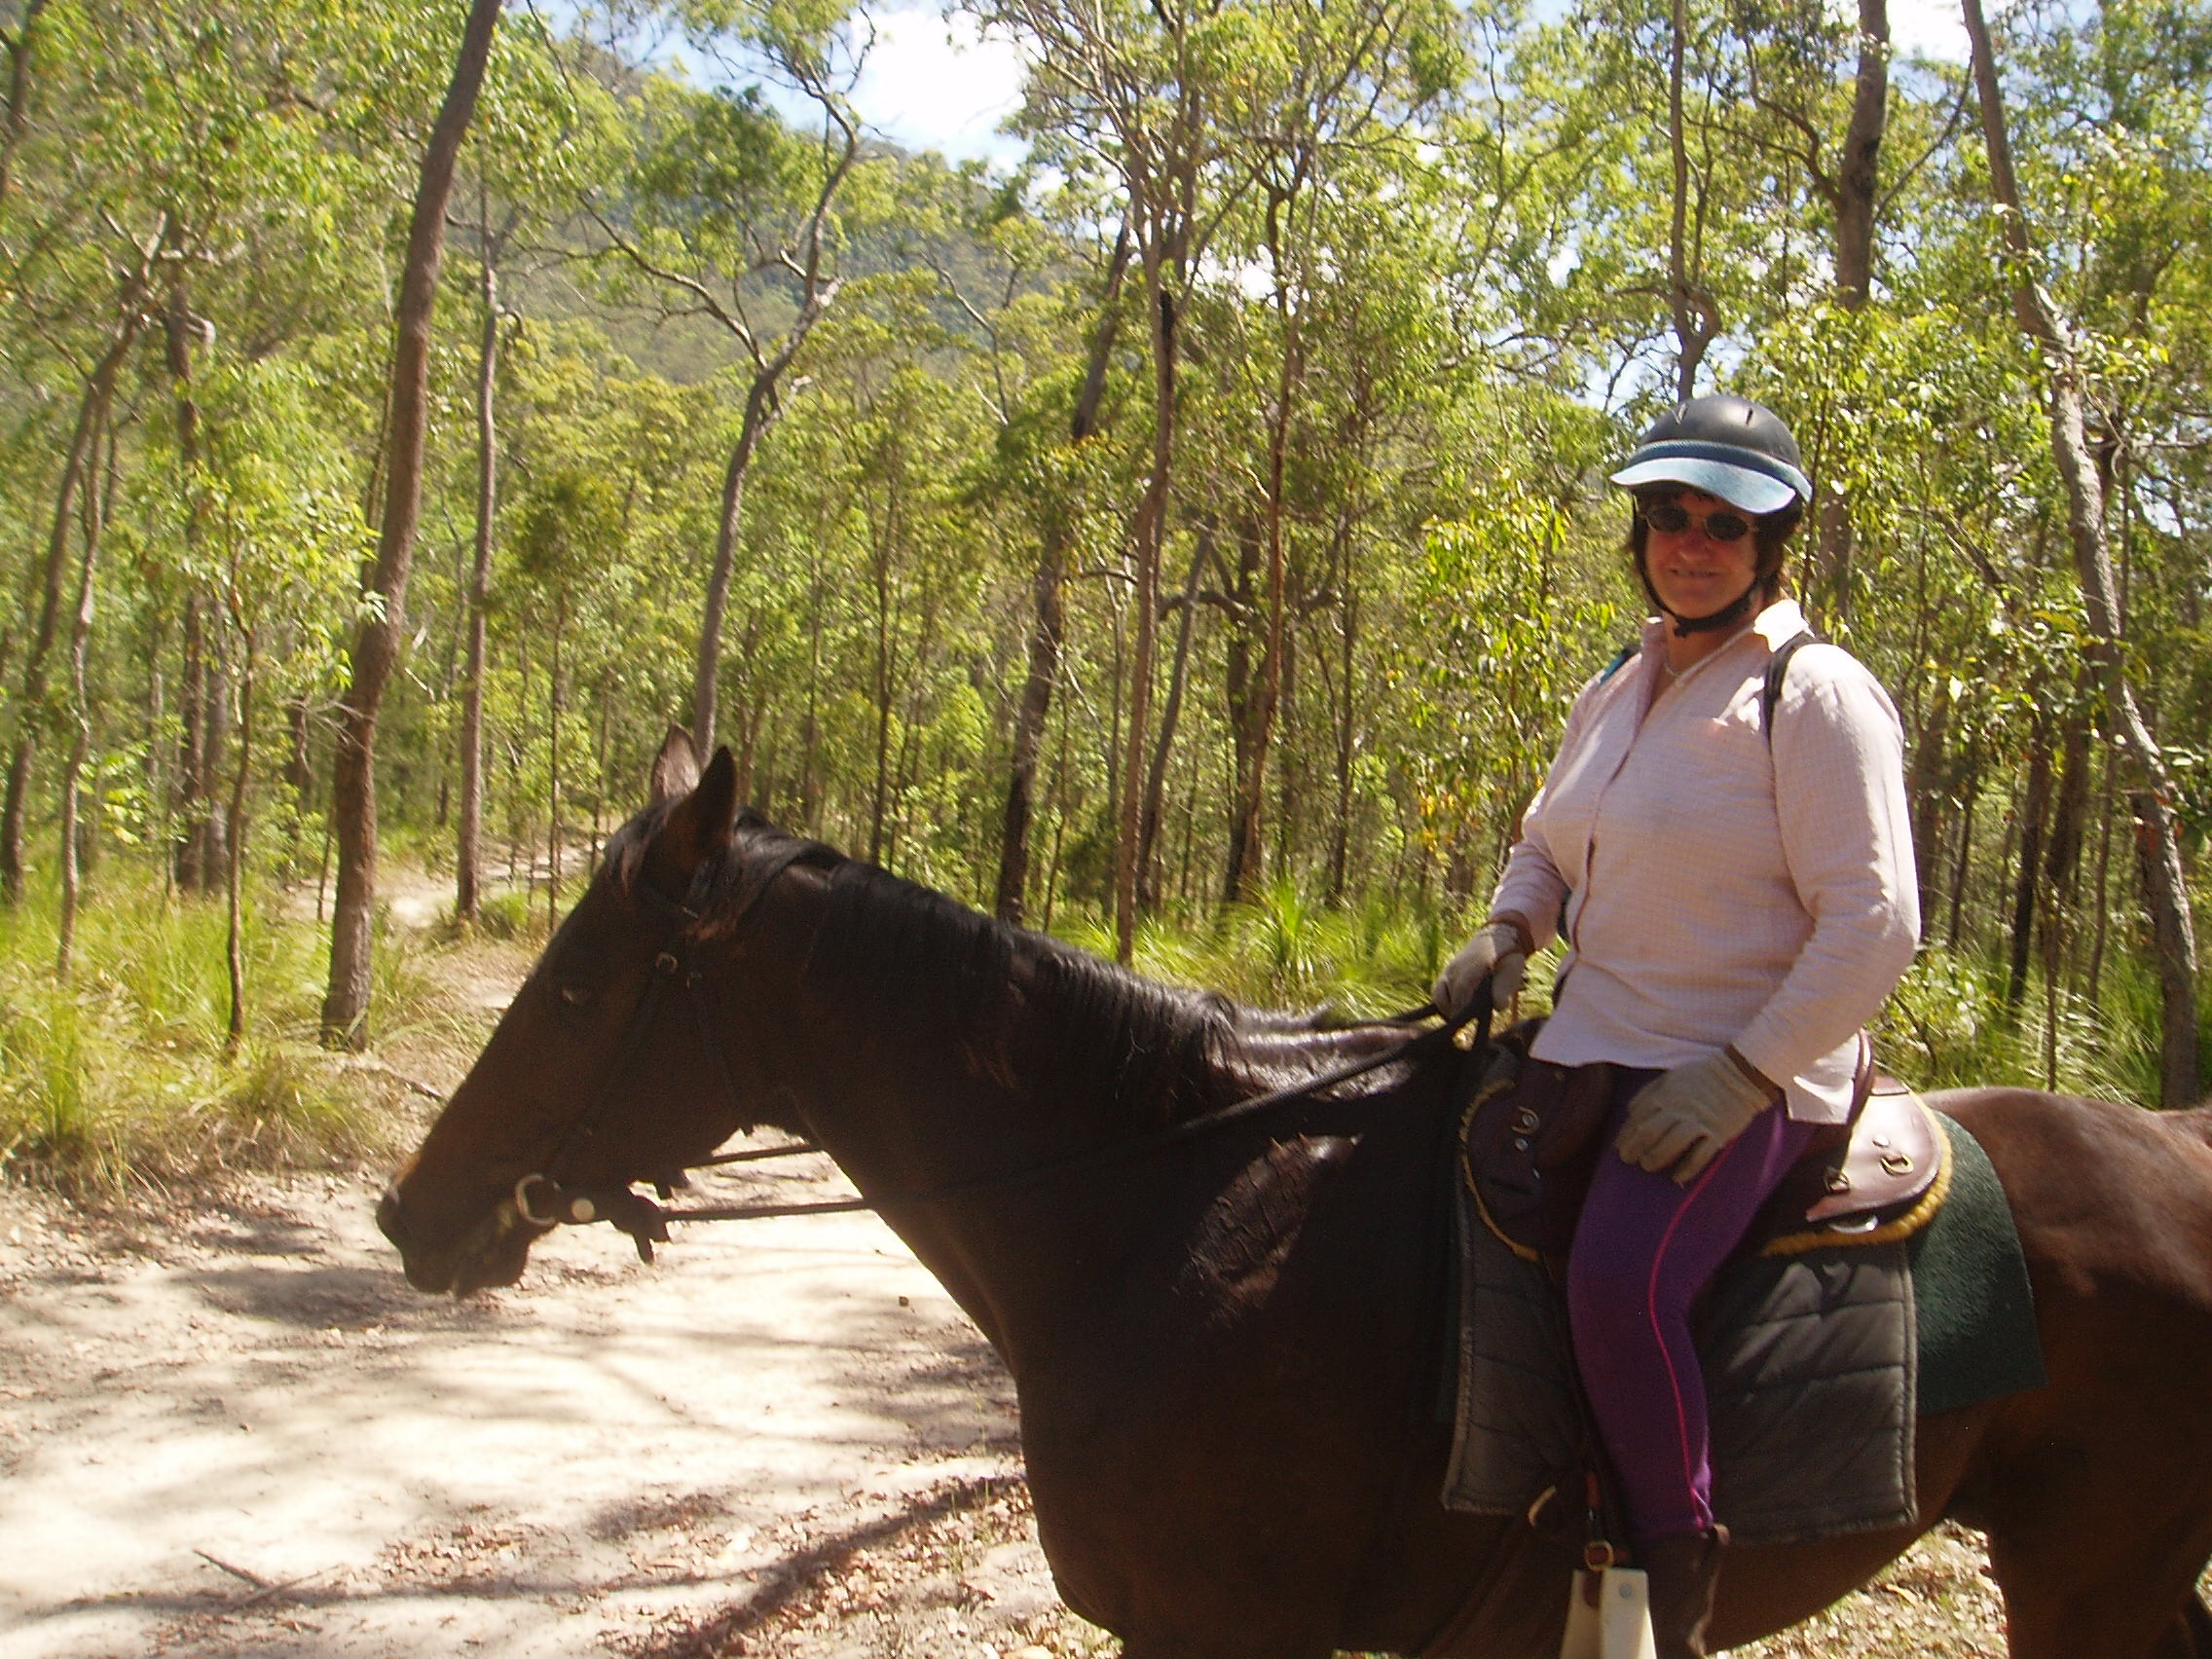 Jenny Emmonson enjoying the trailride.